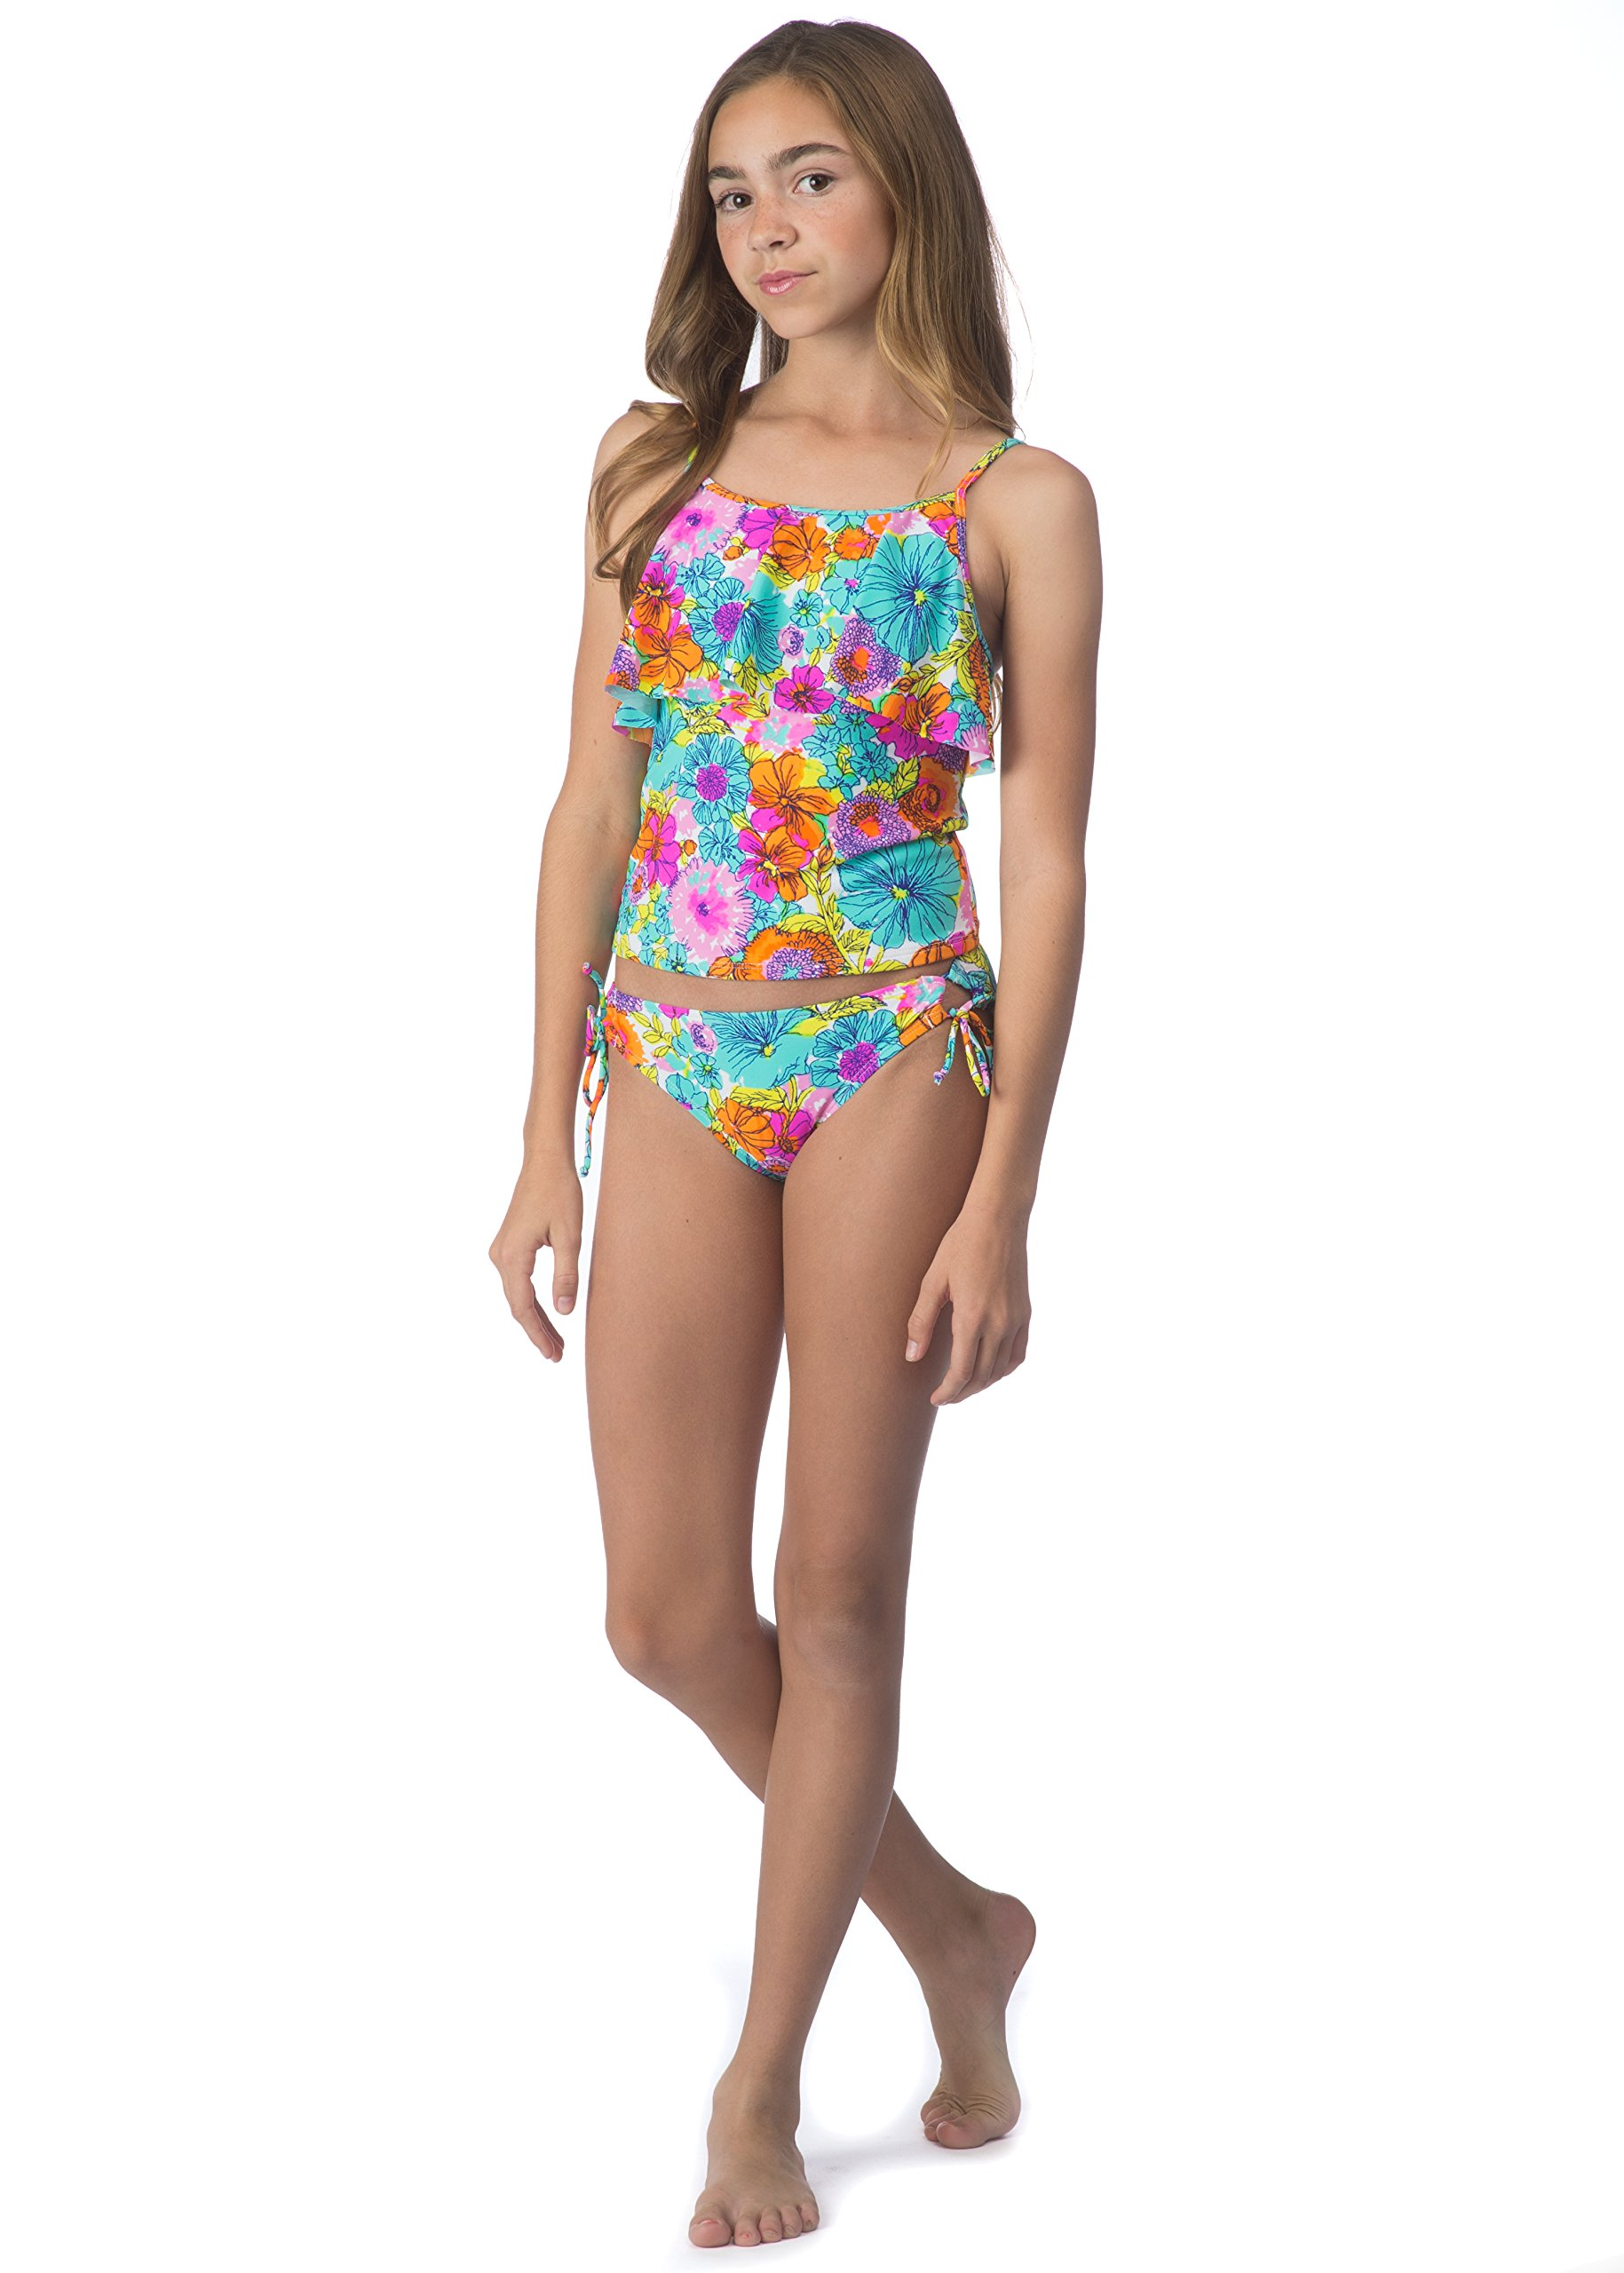 Hobie Big Girls' Fleur to Love Two Piece Tankini Adjustable Hipster Swimsuit, Multi, 10